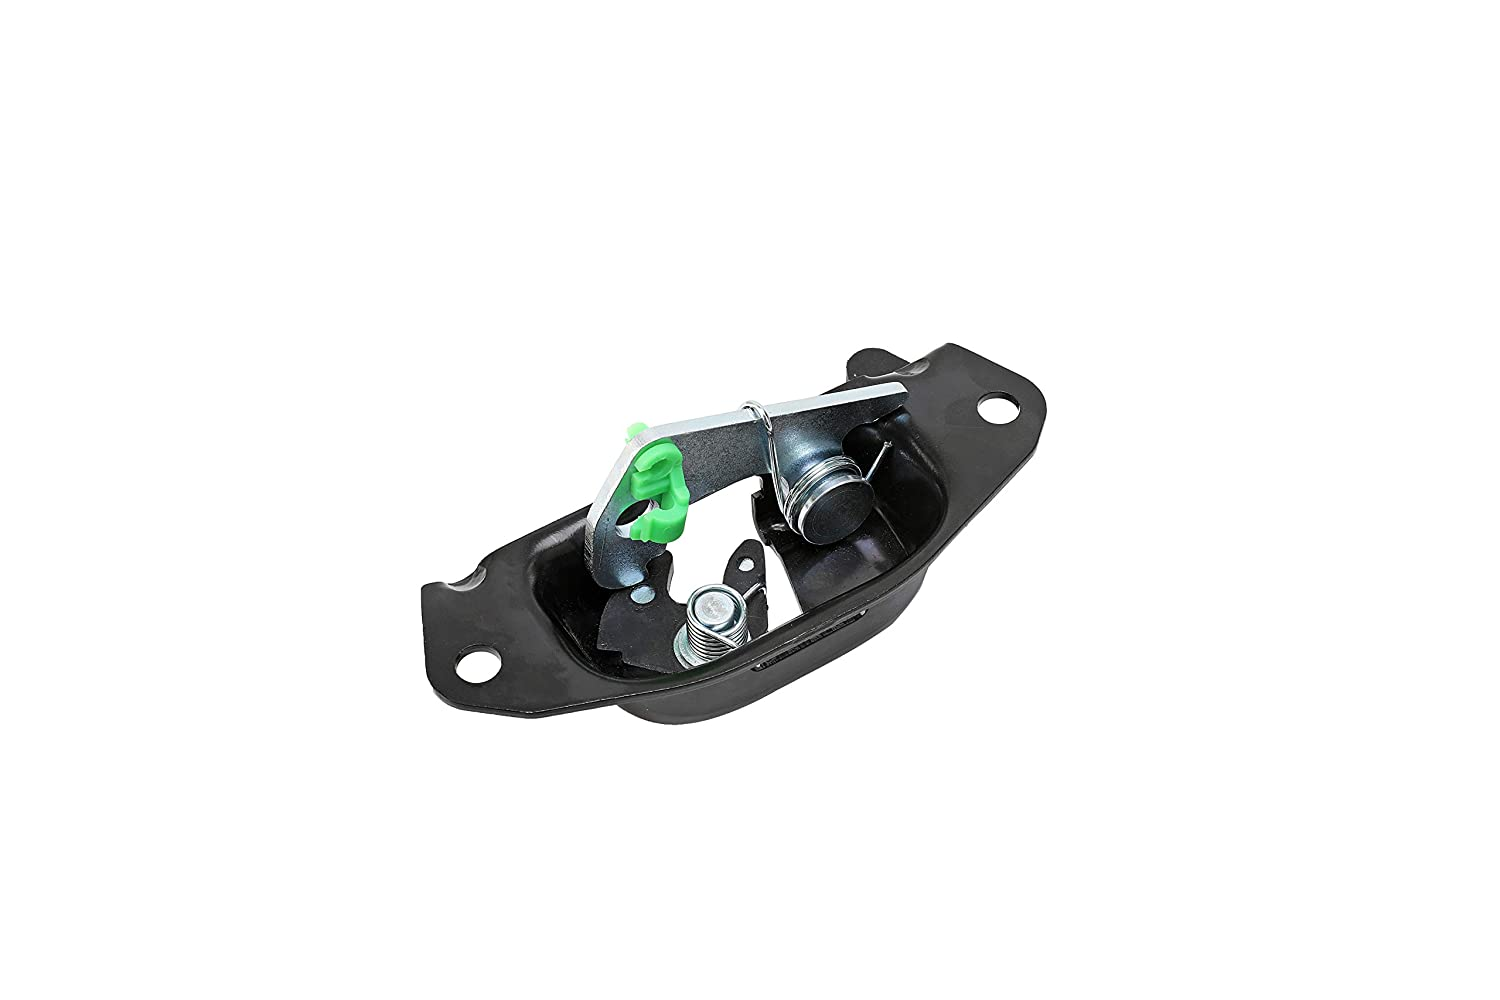 Tailgate Striker Bolt Latch Lever Kit Fits Chevy Avalanche 1500 3500HD 15921949 Left /& Right Latches Replaces 15921948 2500 Classic 2500 2500HD 1500HD Silverado and GMC Sierra 1500